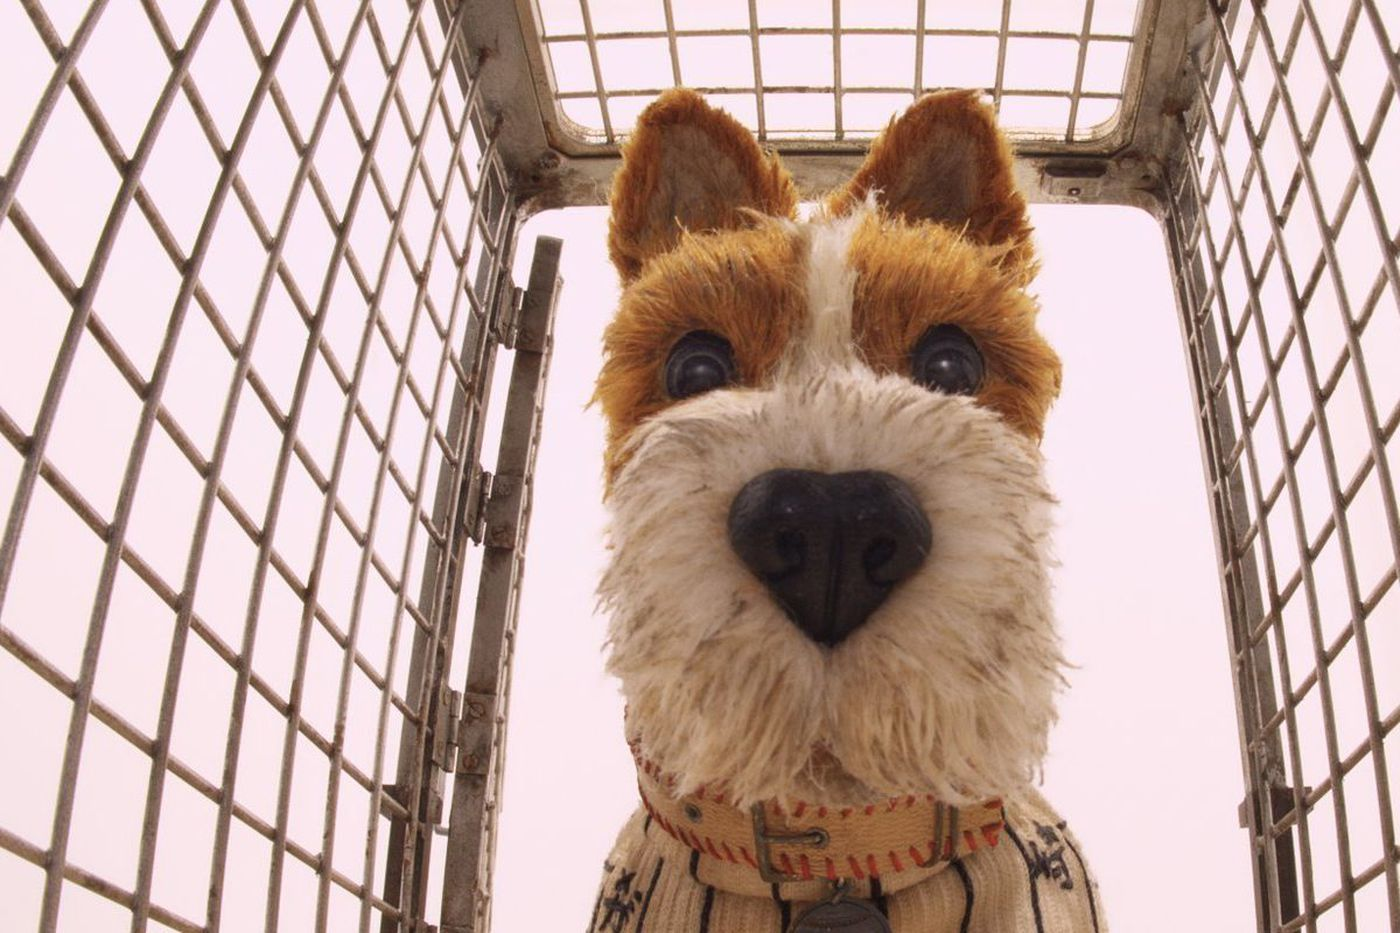 'Isle of Dogs': A Wes Anderson movie fur the whole family